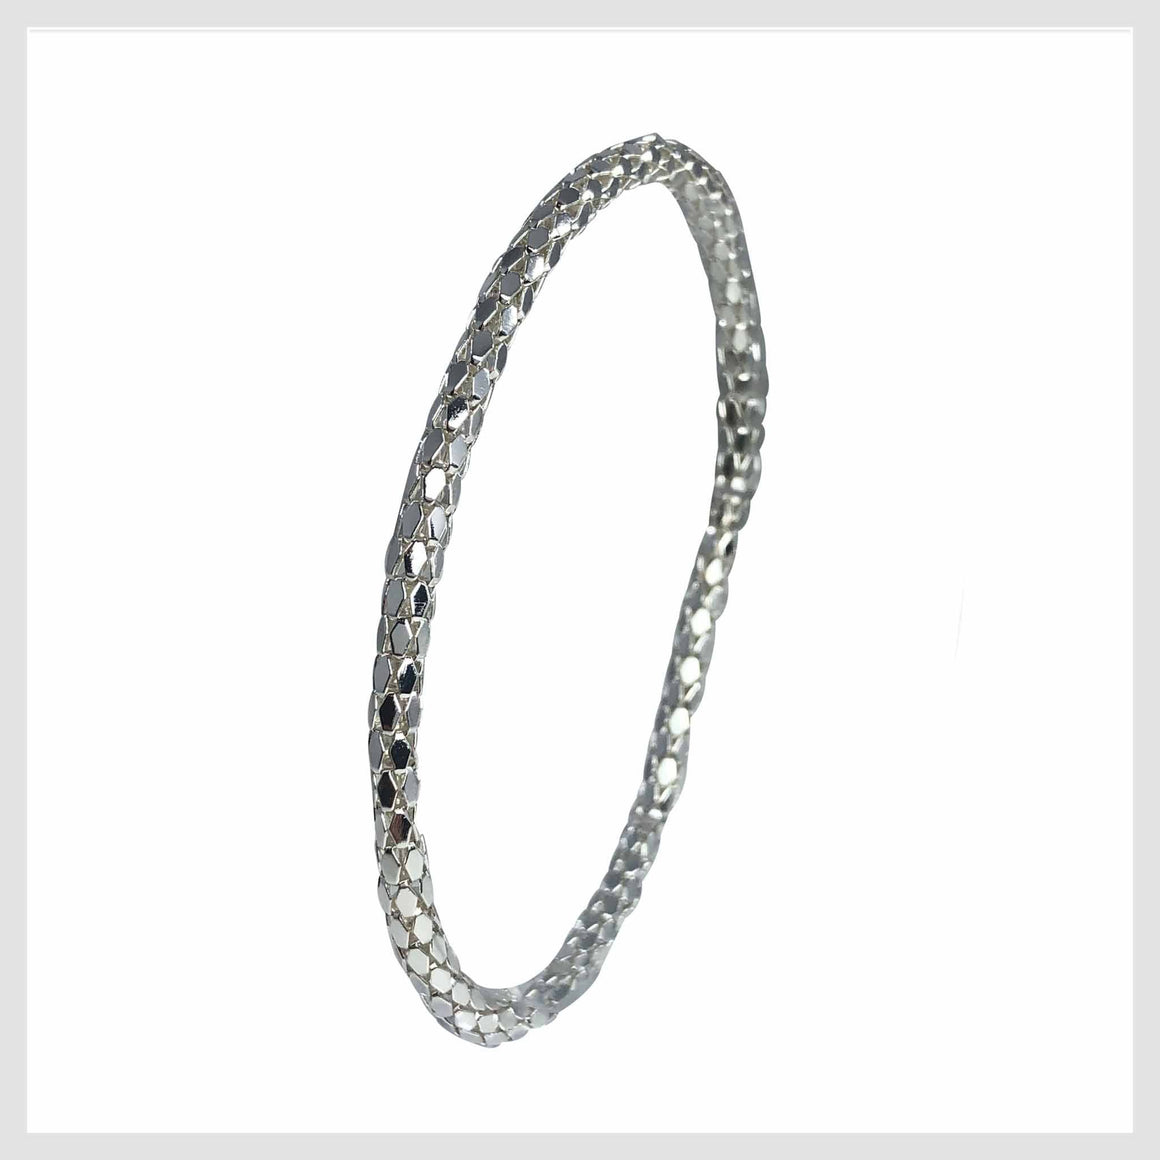 925 Sterling Silver Plated Mesh Chain Stretch Bracelet (Silver 4mm Hexagon Links) - Beads and Dangles